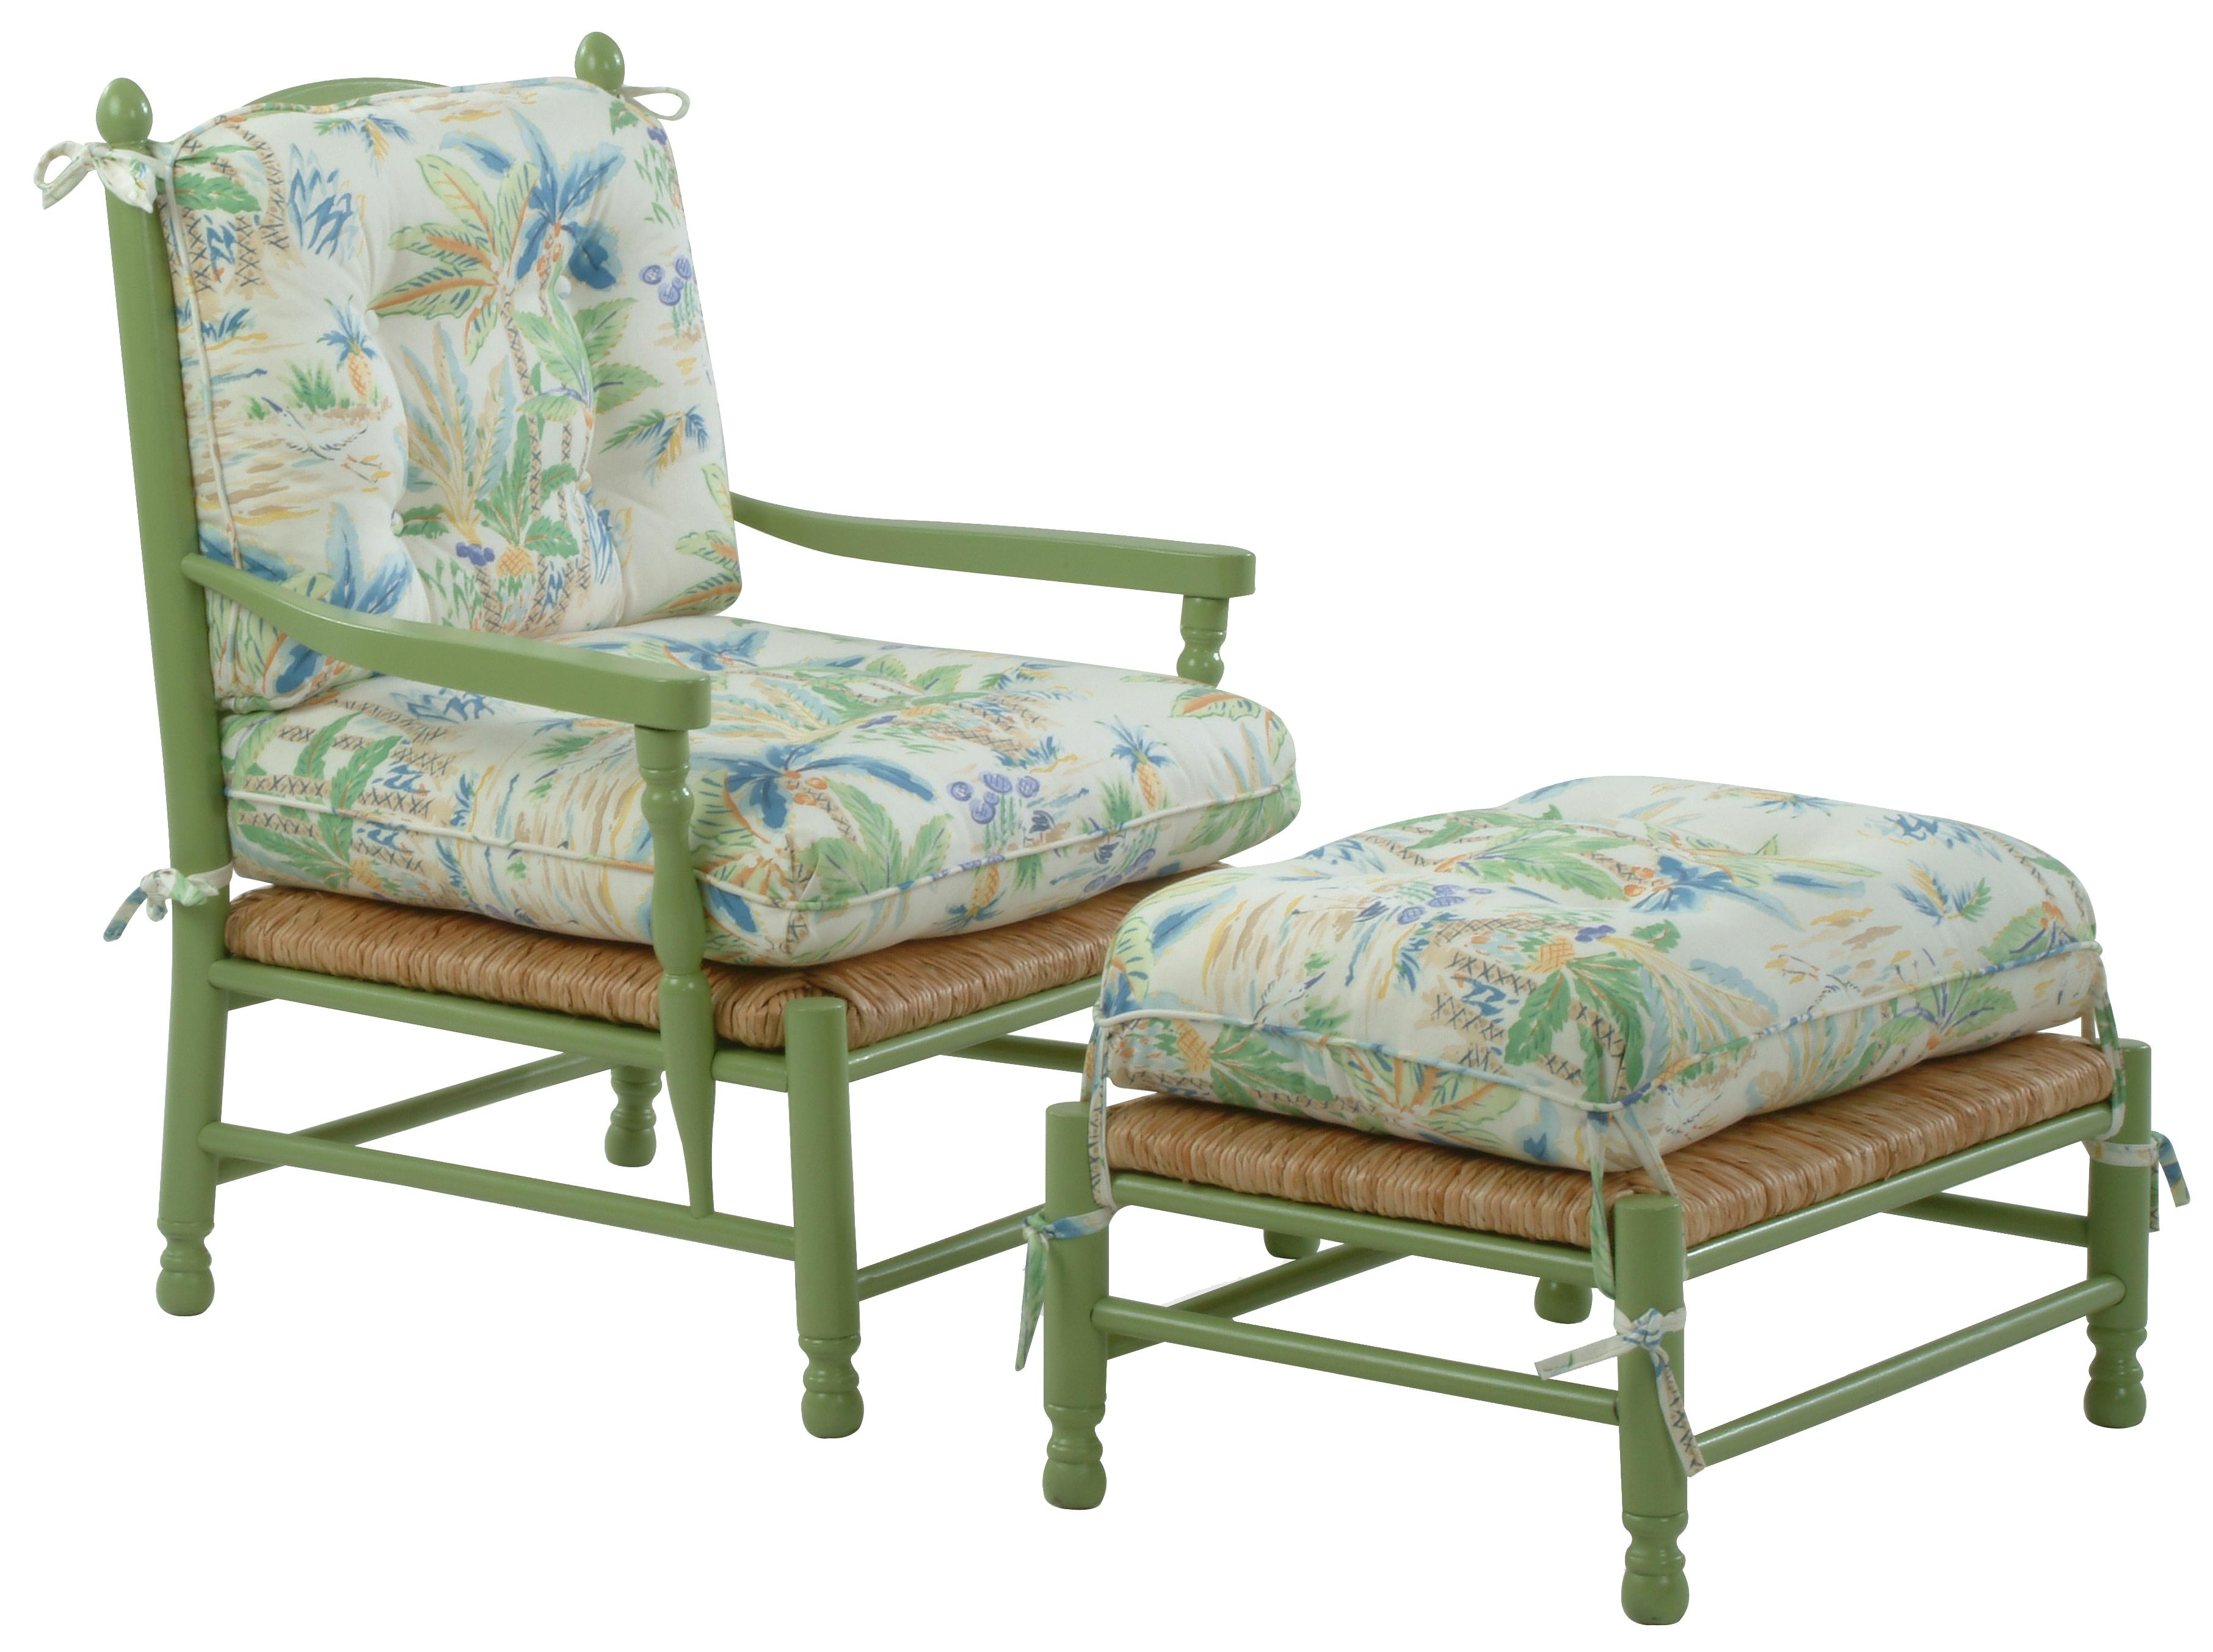 cottage style chairs wedding for bride and groom braxton culler accent coastal vineyard chair ottoman set